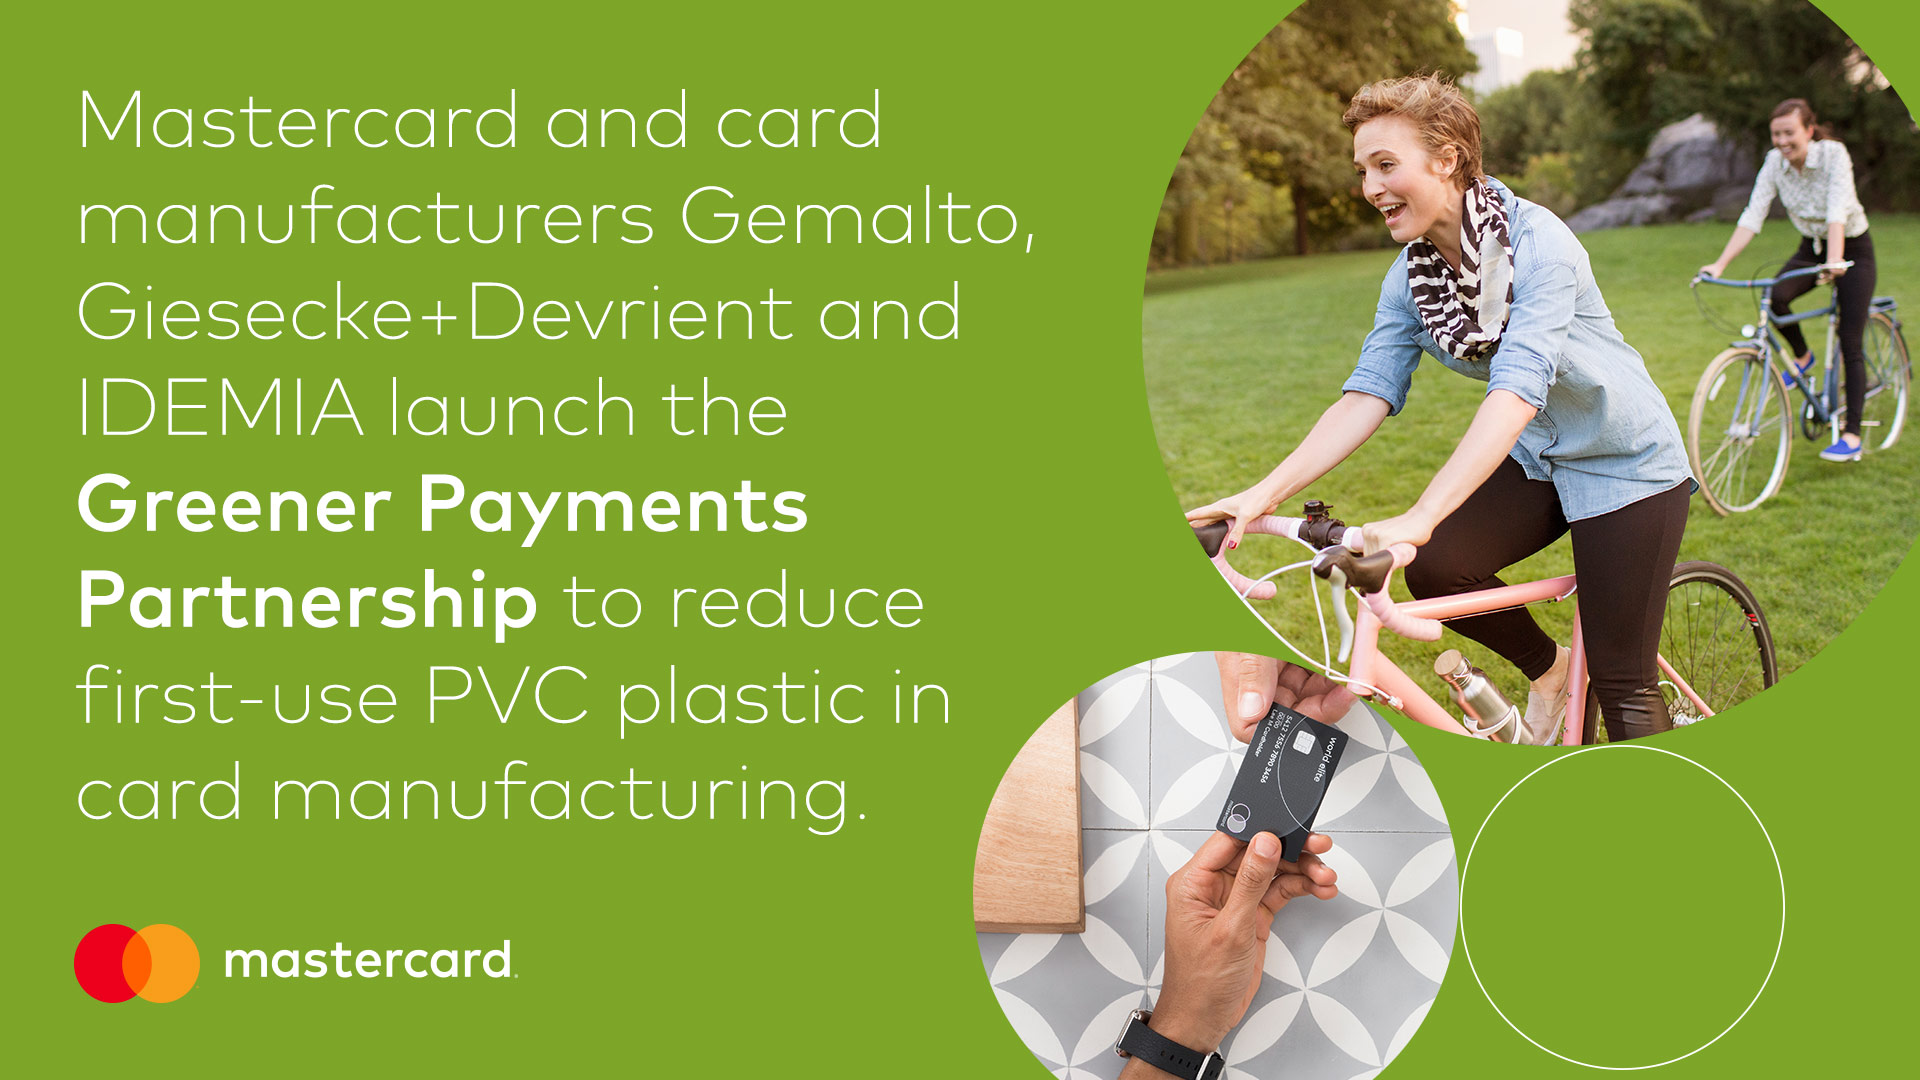 New Partnership Aims to Make Payments More Sustainable